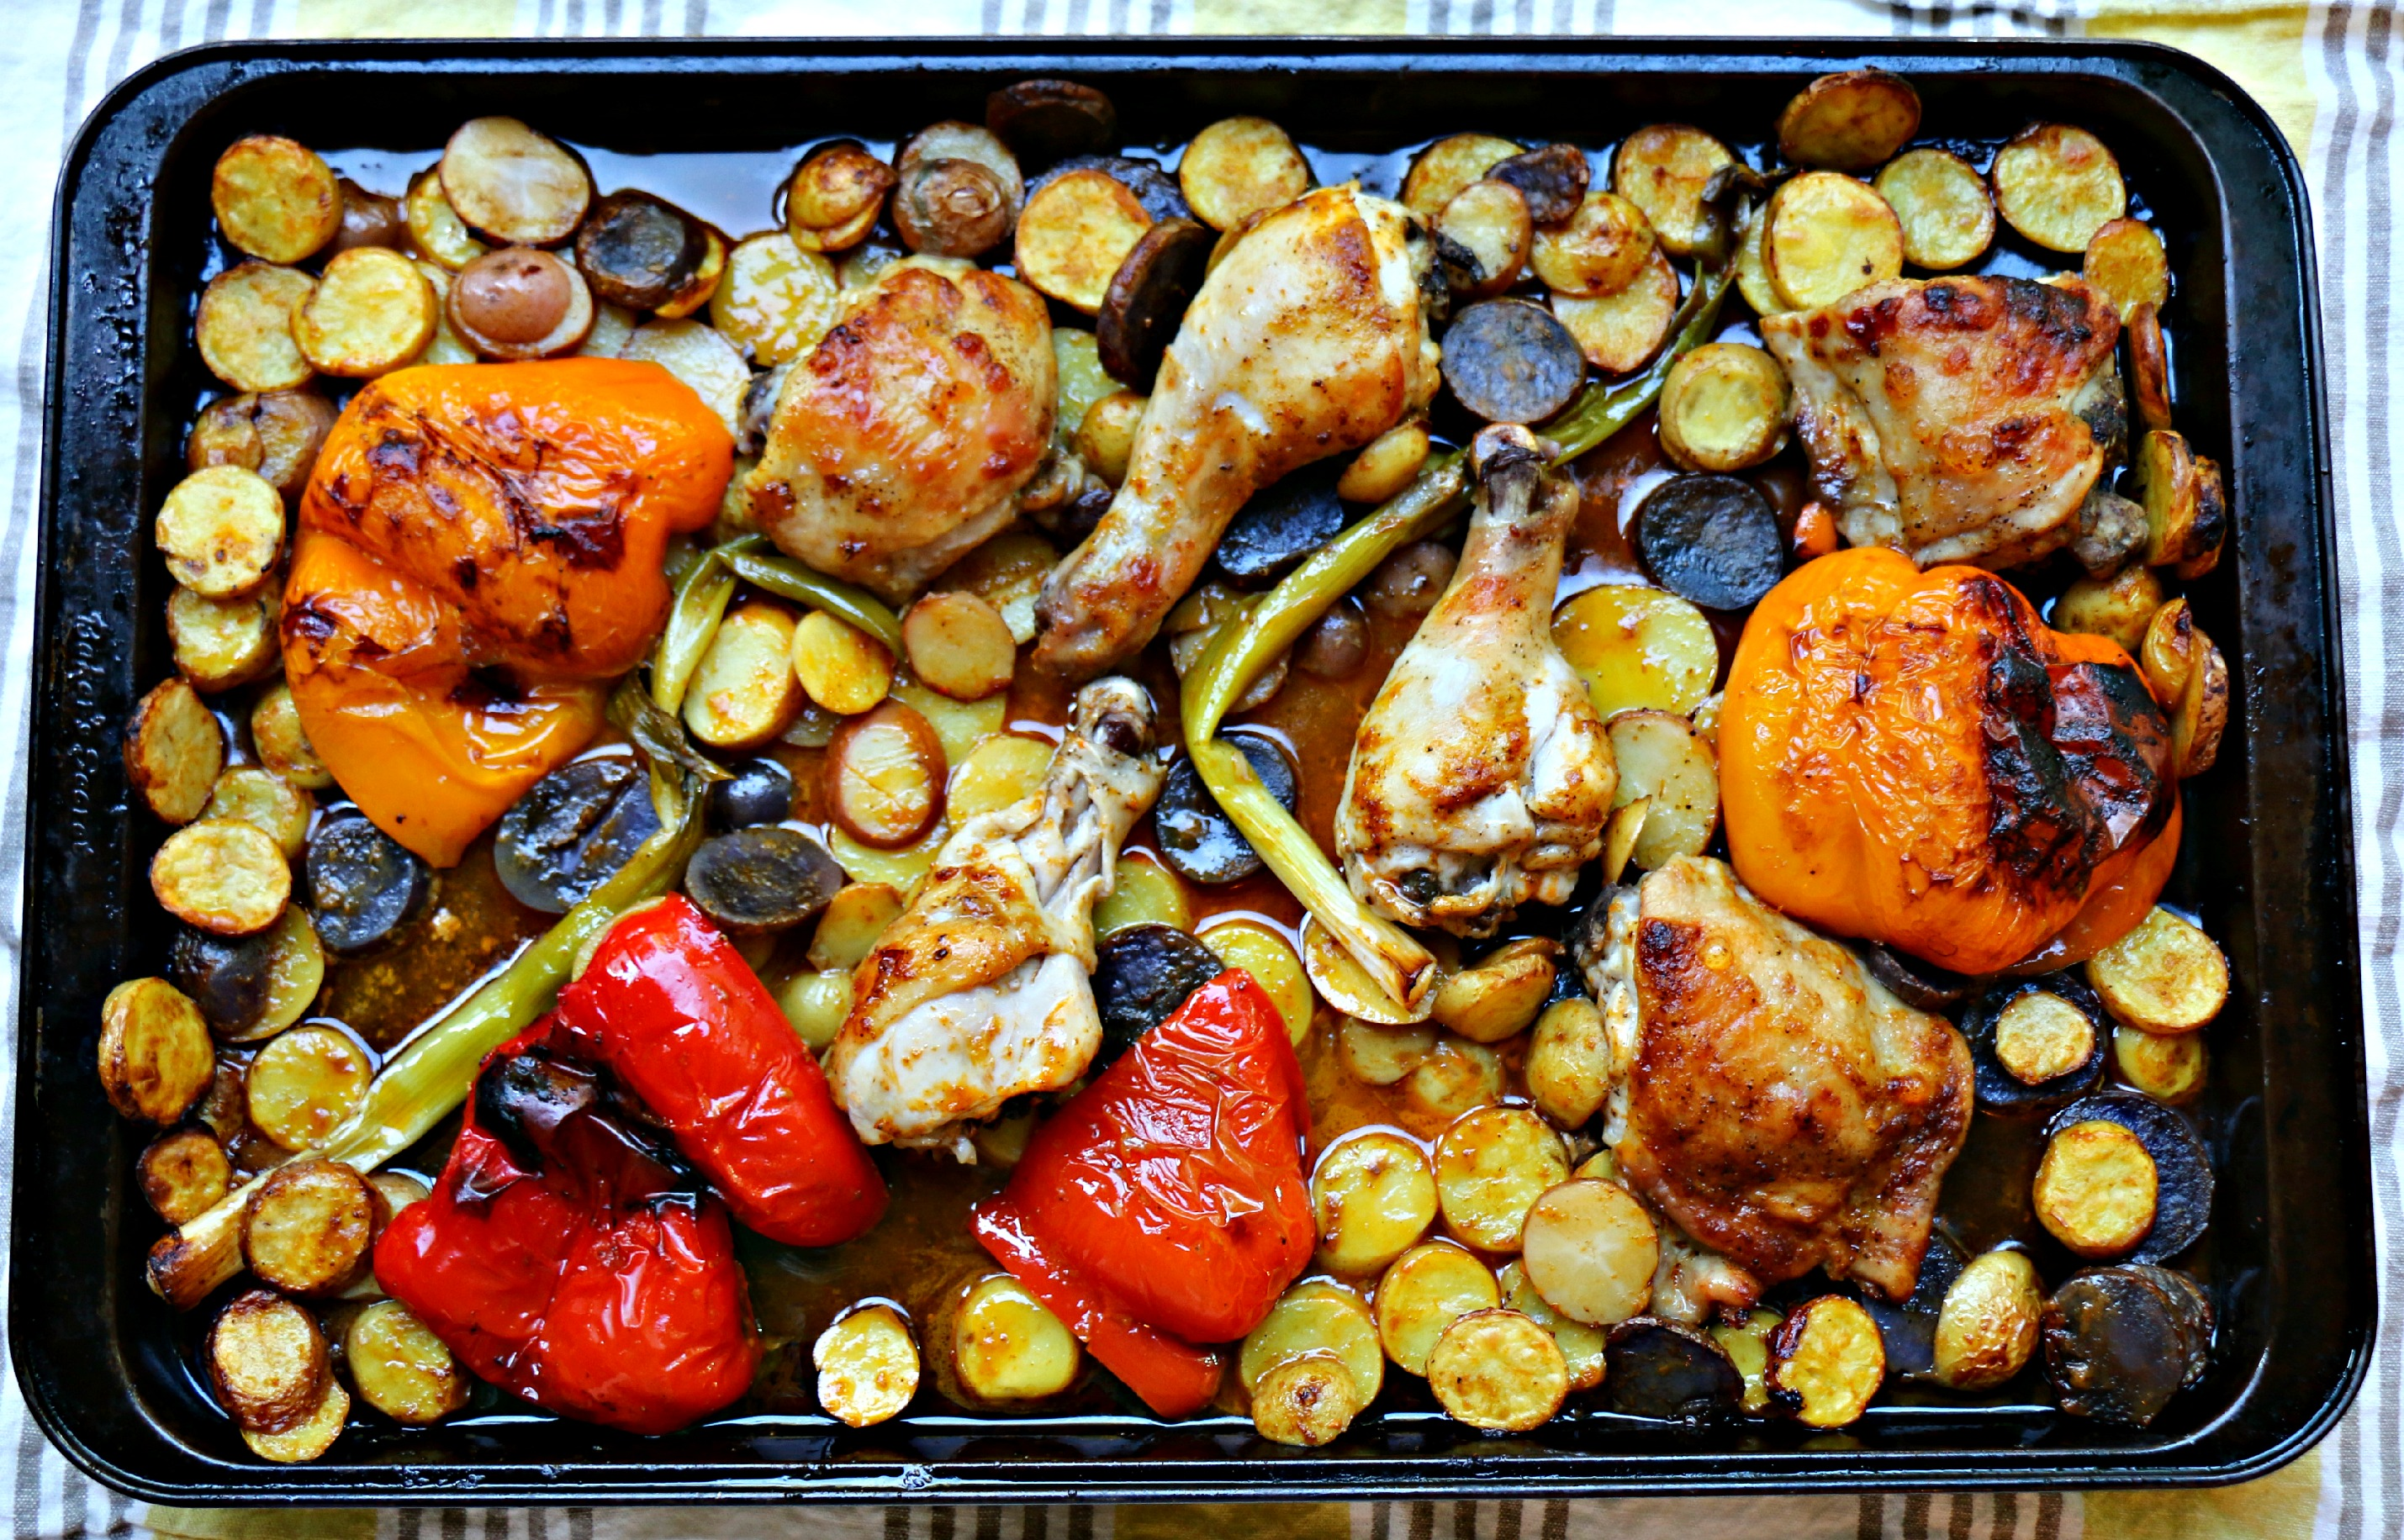 Harissa Chicken, Potatoes and Veg